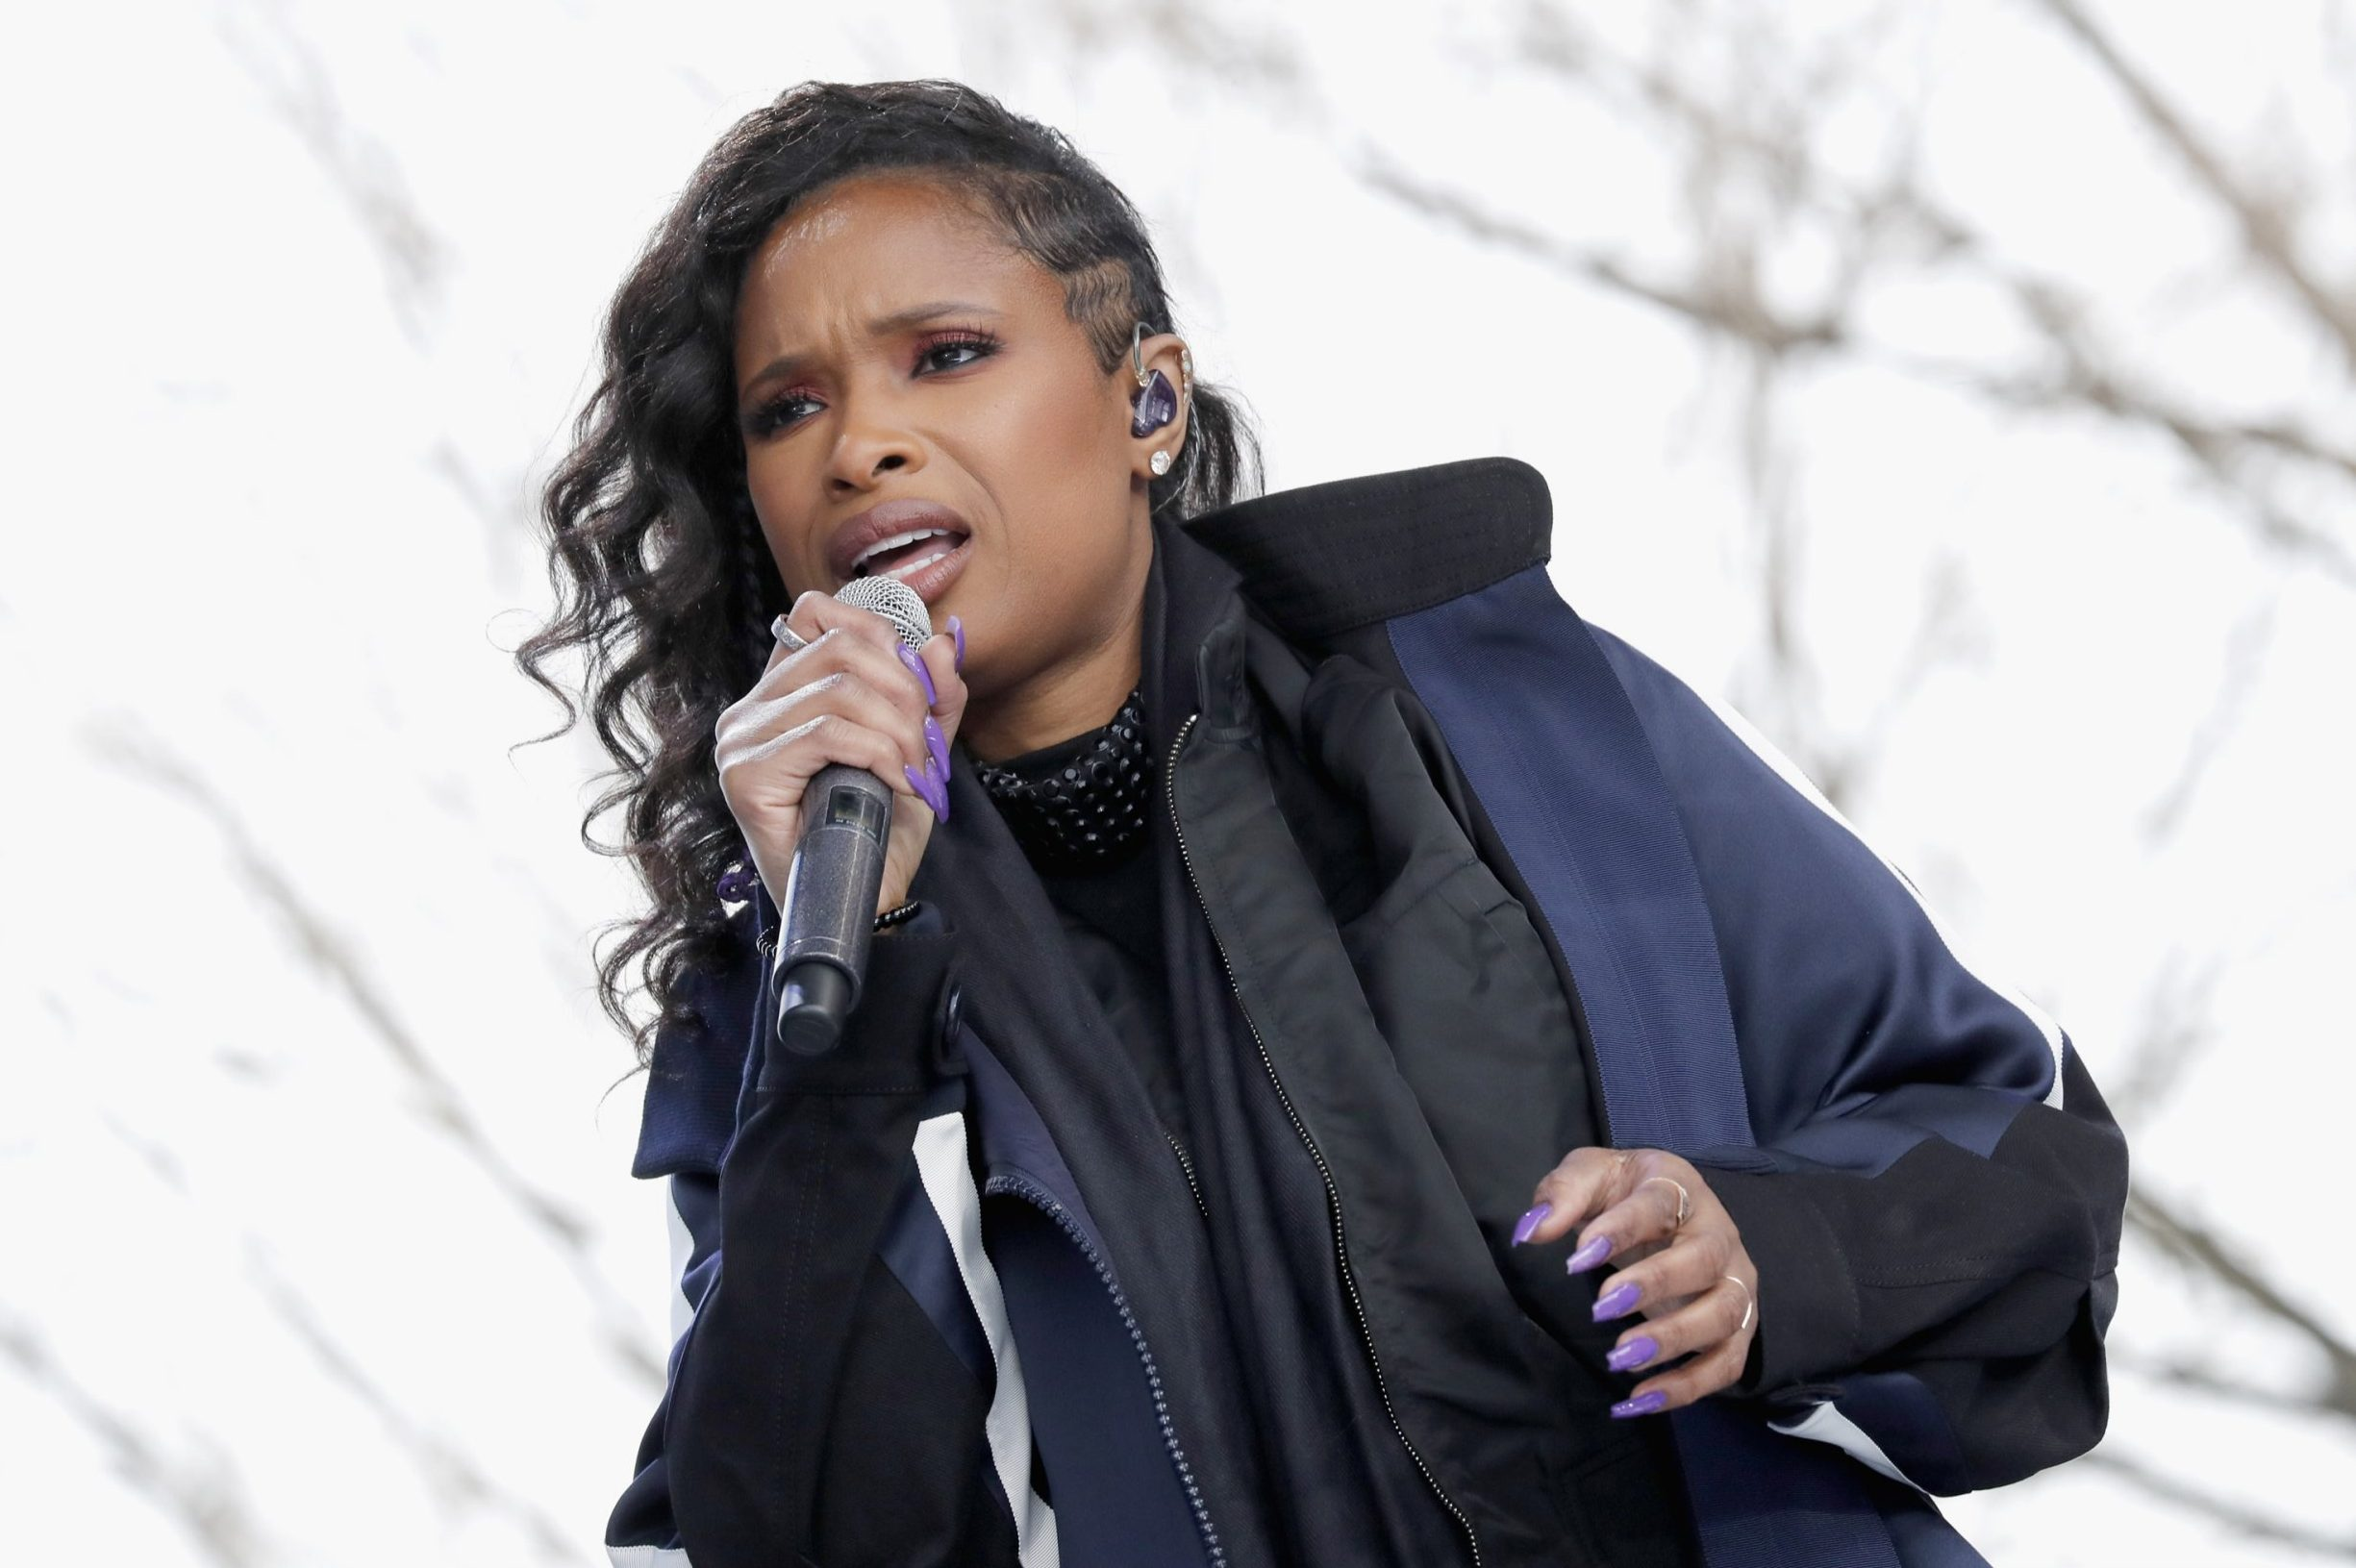 WASHINGTON, DC - MARCH 24: Jennifer Hudson performs onstage at March For Our Lives on March 24, 2018 in Washington, DC. (Photo by Paul Morigi/Getty Images for March For Our Lives)